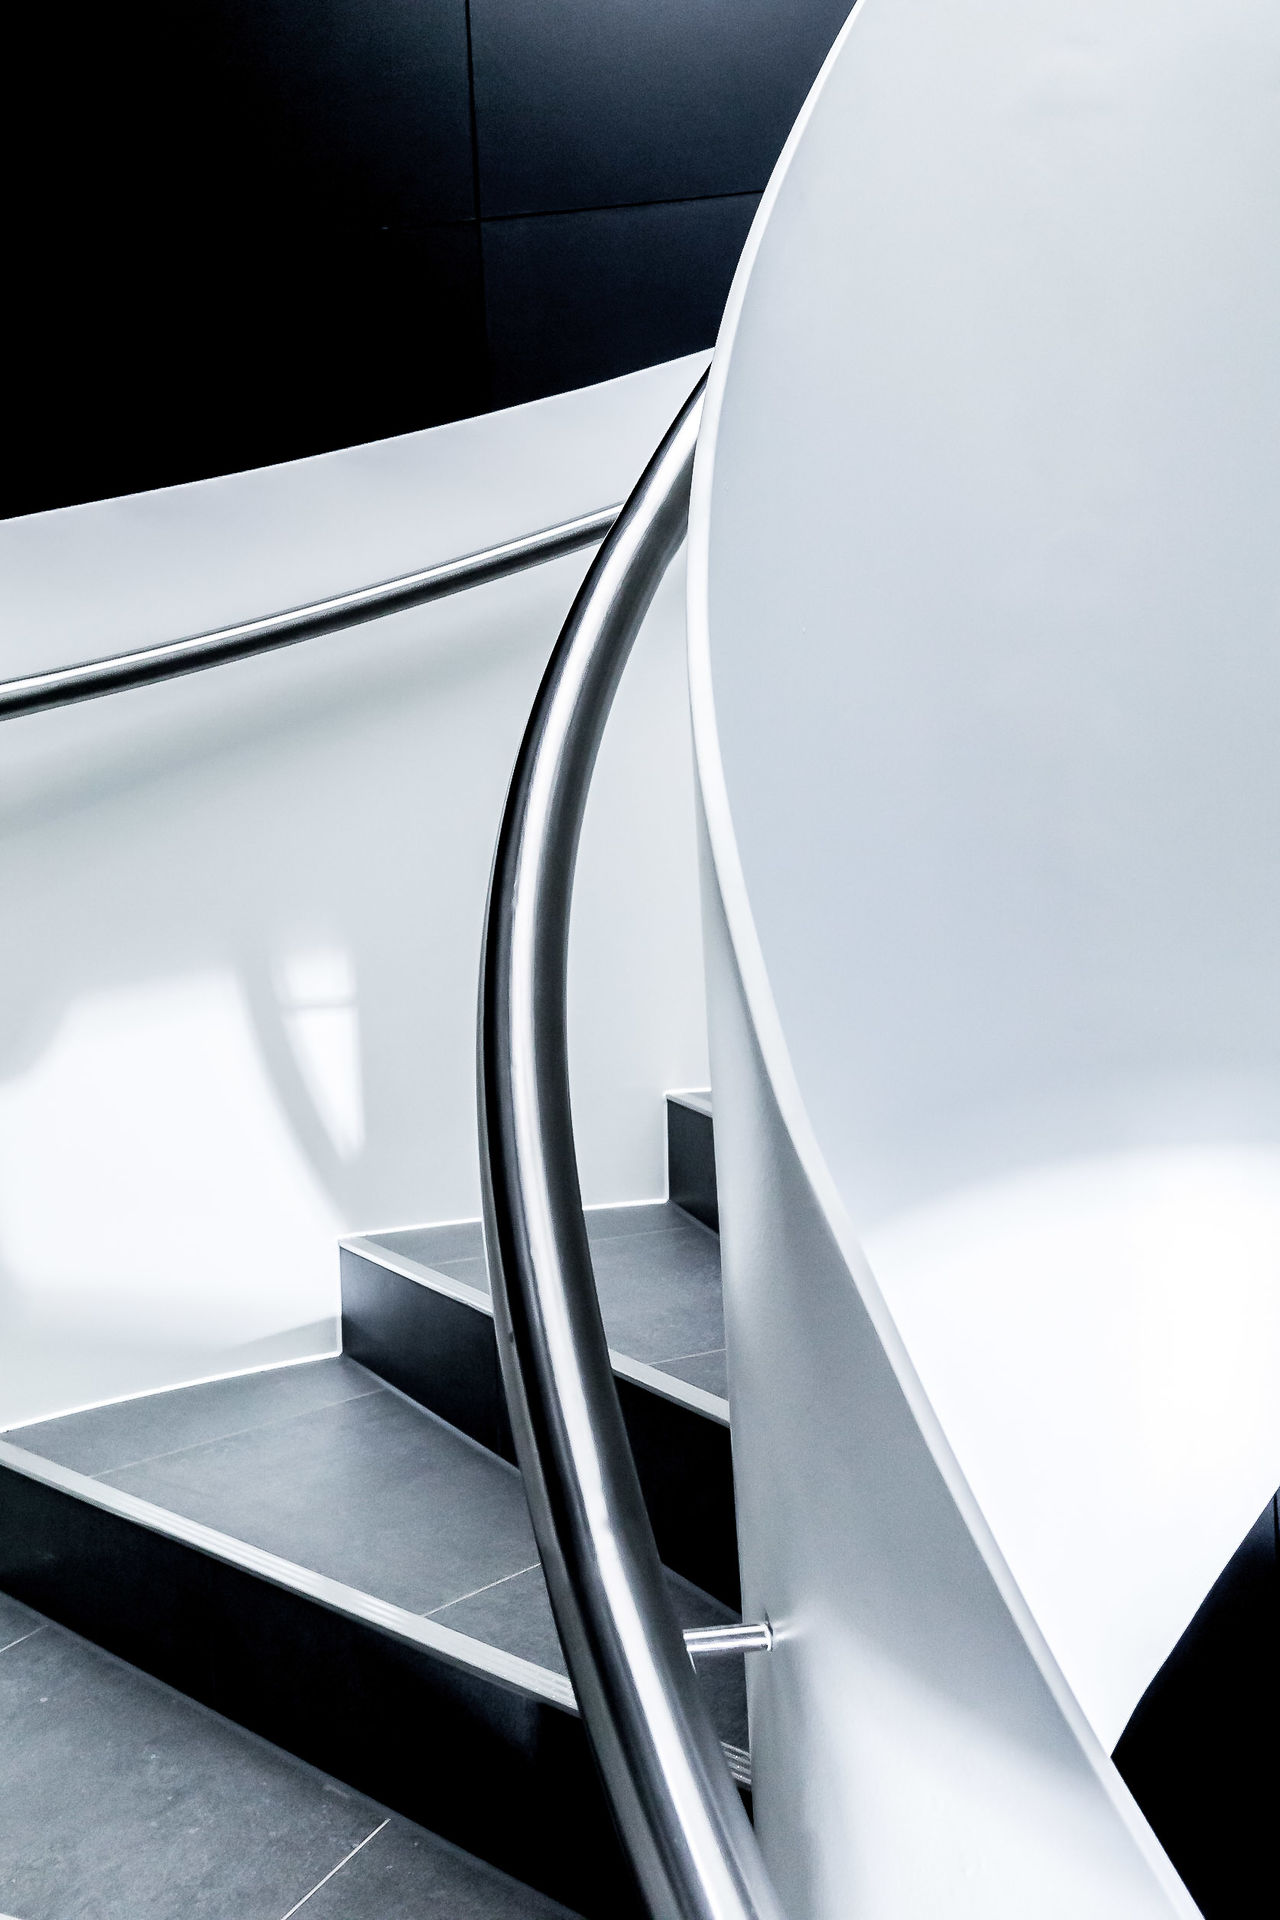 Black & White Black And White Photography Close-up Day Futuristic Indoors  Minimal Minimalism Minimalism_bw Minimalist Minimalist Architecture Minimalist Photography  Minimalistic Minimalobsession Modern No People Shiny Stair Staircase Stairs Stairs & Shadows Stairway Stairways White White Color